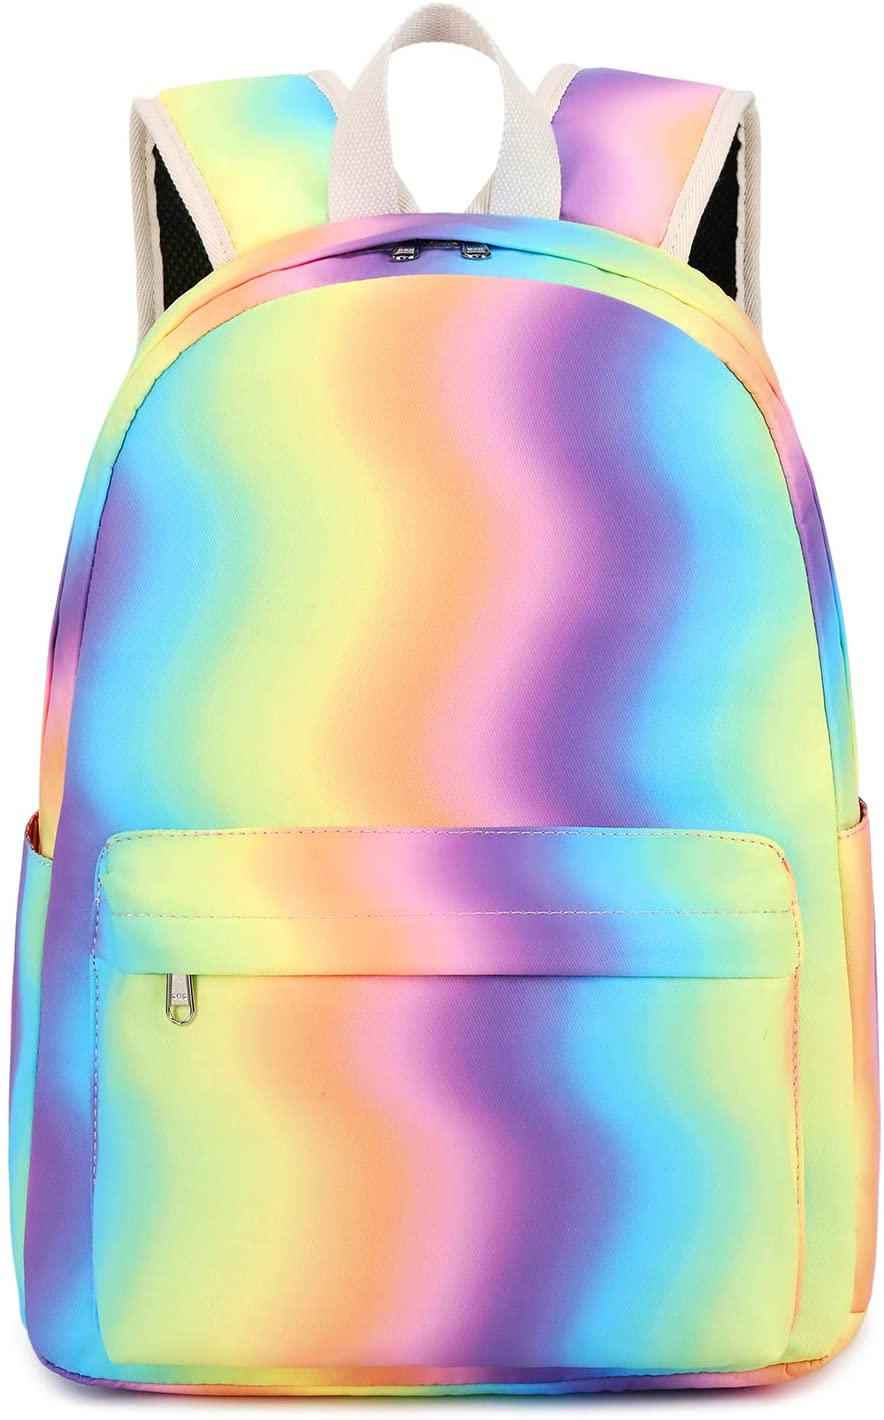 Kids Backpack for Girls Rainbow Backpack Toddler Preschool Bookbag Perfect Kindergarten Nursery Daycare Elementary (Rainbow)